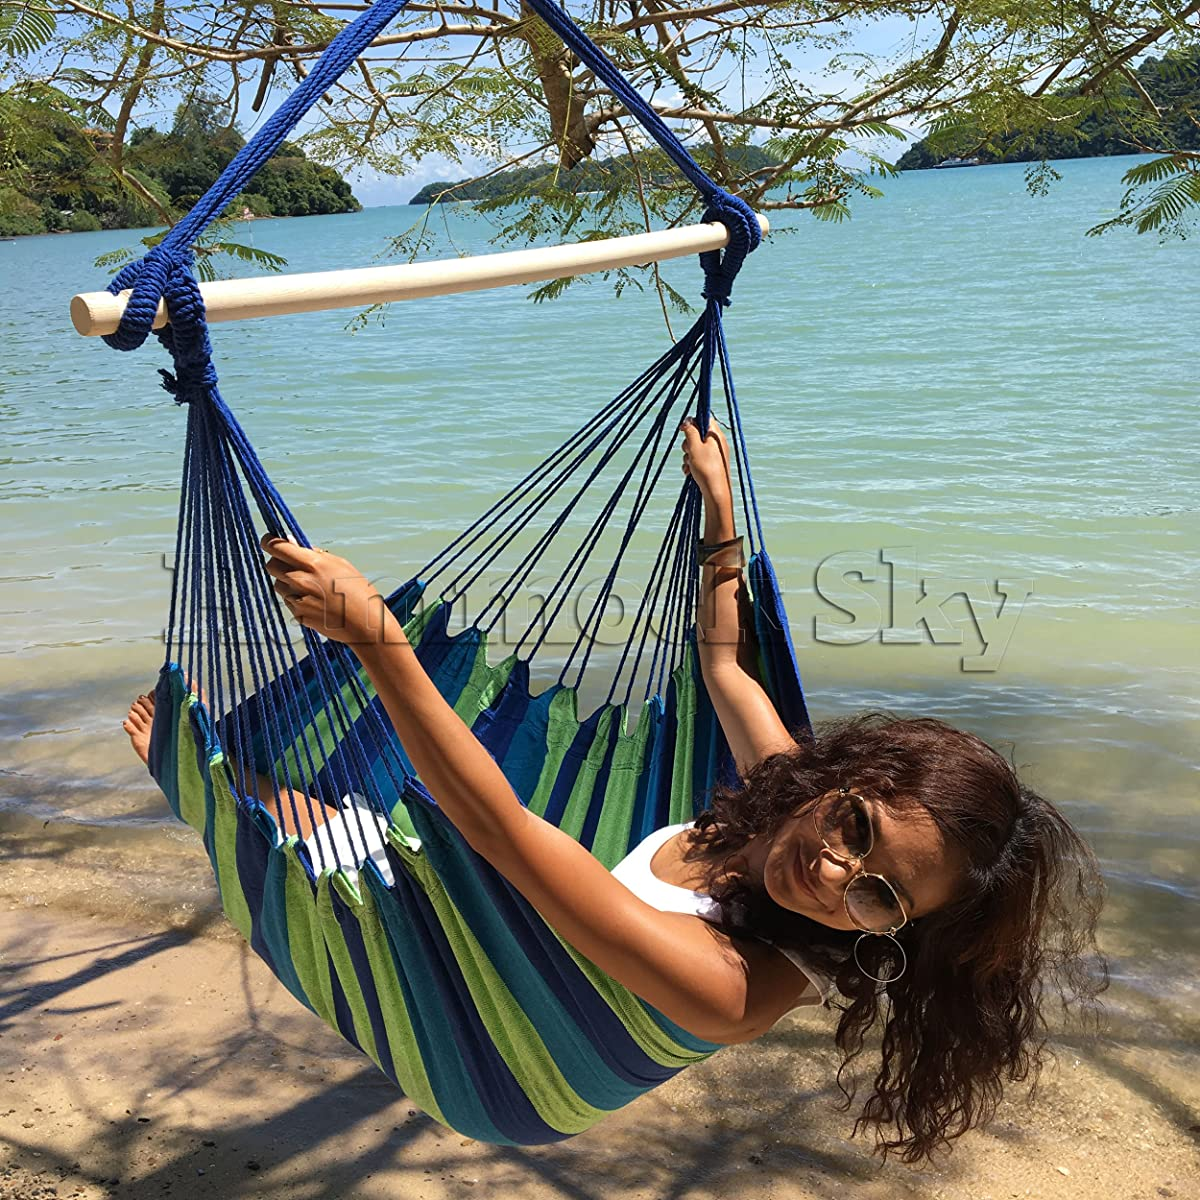 Large Brazilian Hammock Chair by Hammock Sky - Quality Cotton Weave for Superior Comfort & Durability - Extra Long Bed - Hanging Chair for Yard, Bedroom, Porch, Indoor / Outdoor (Blue & Green)